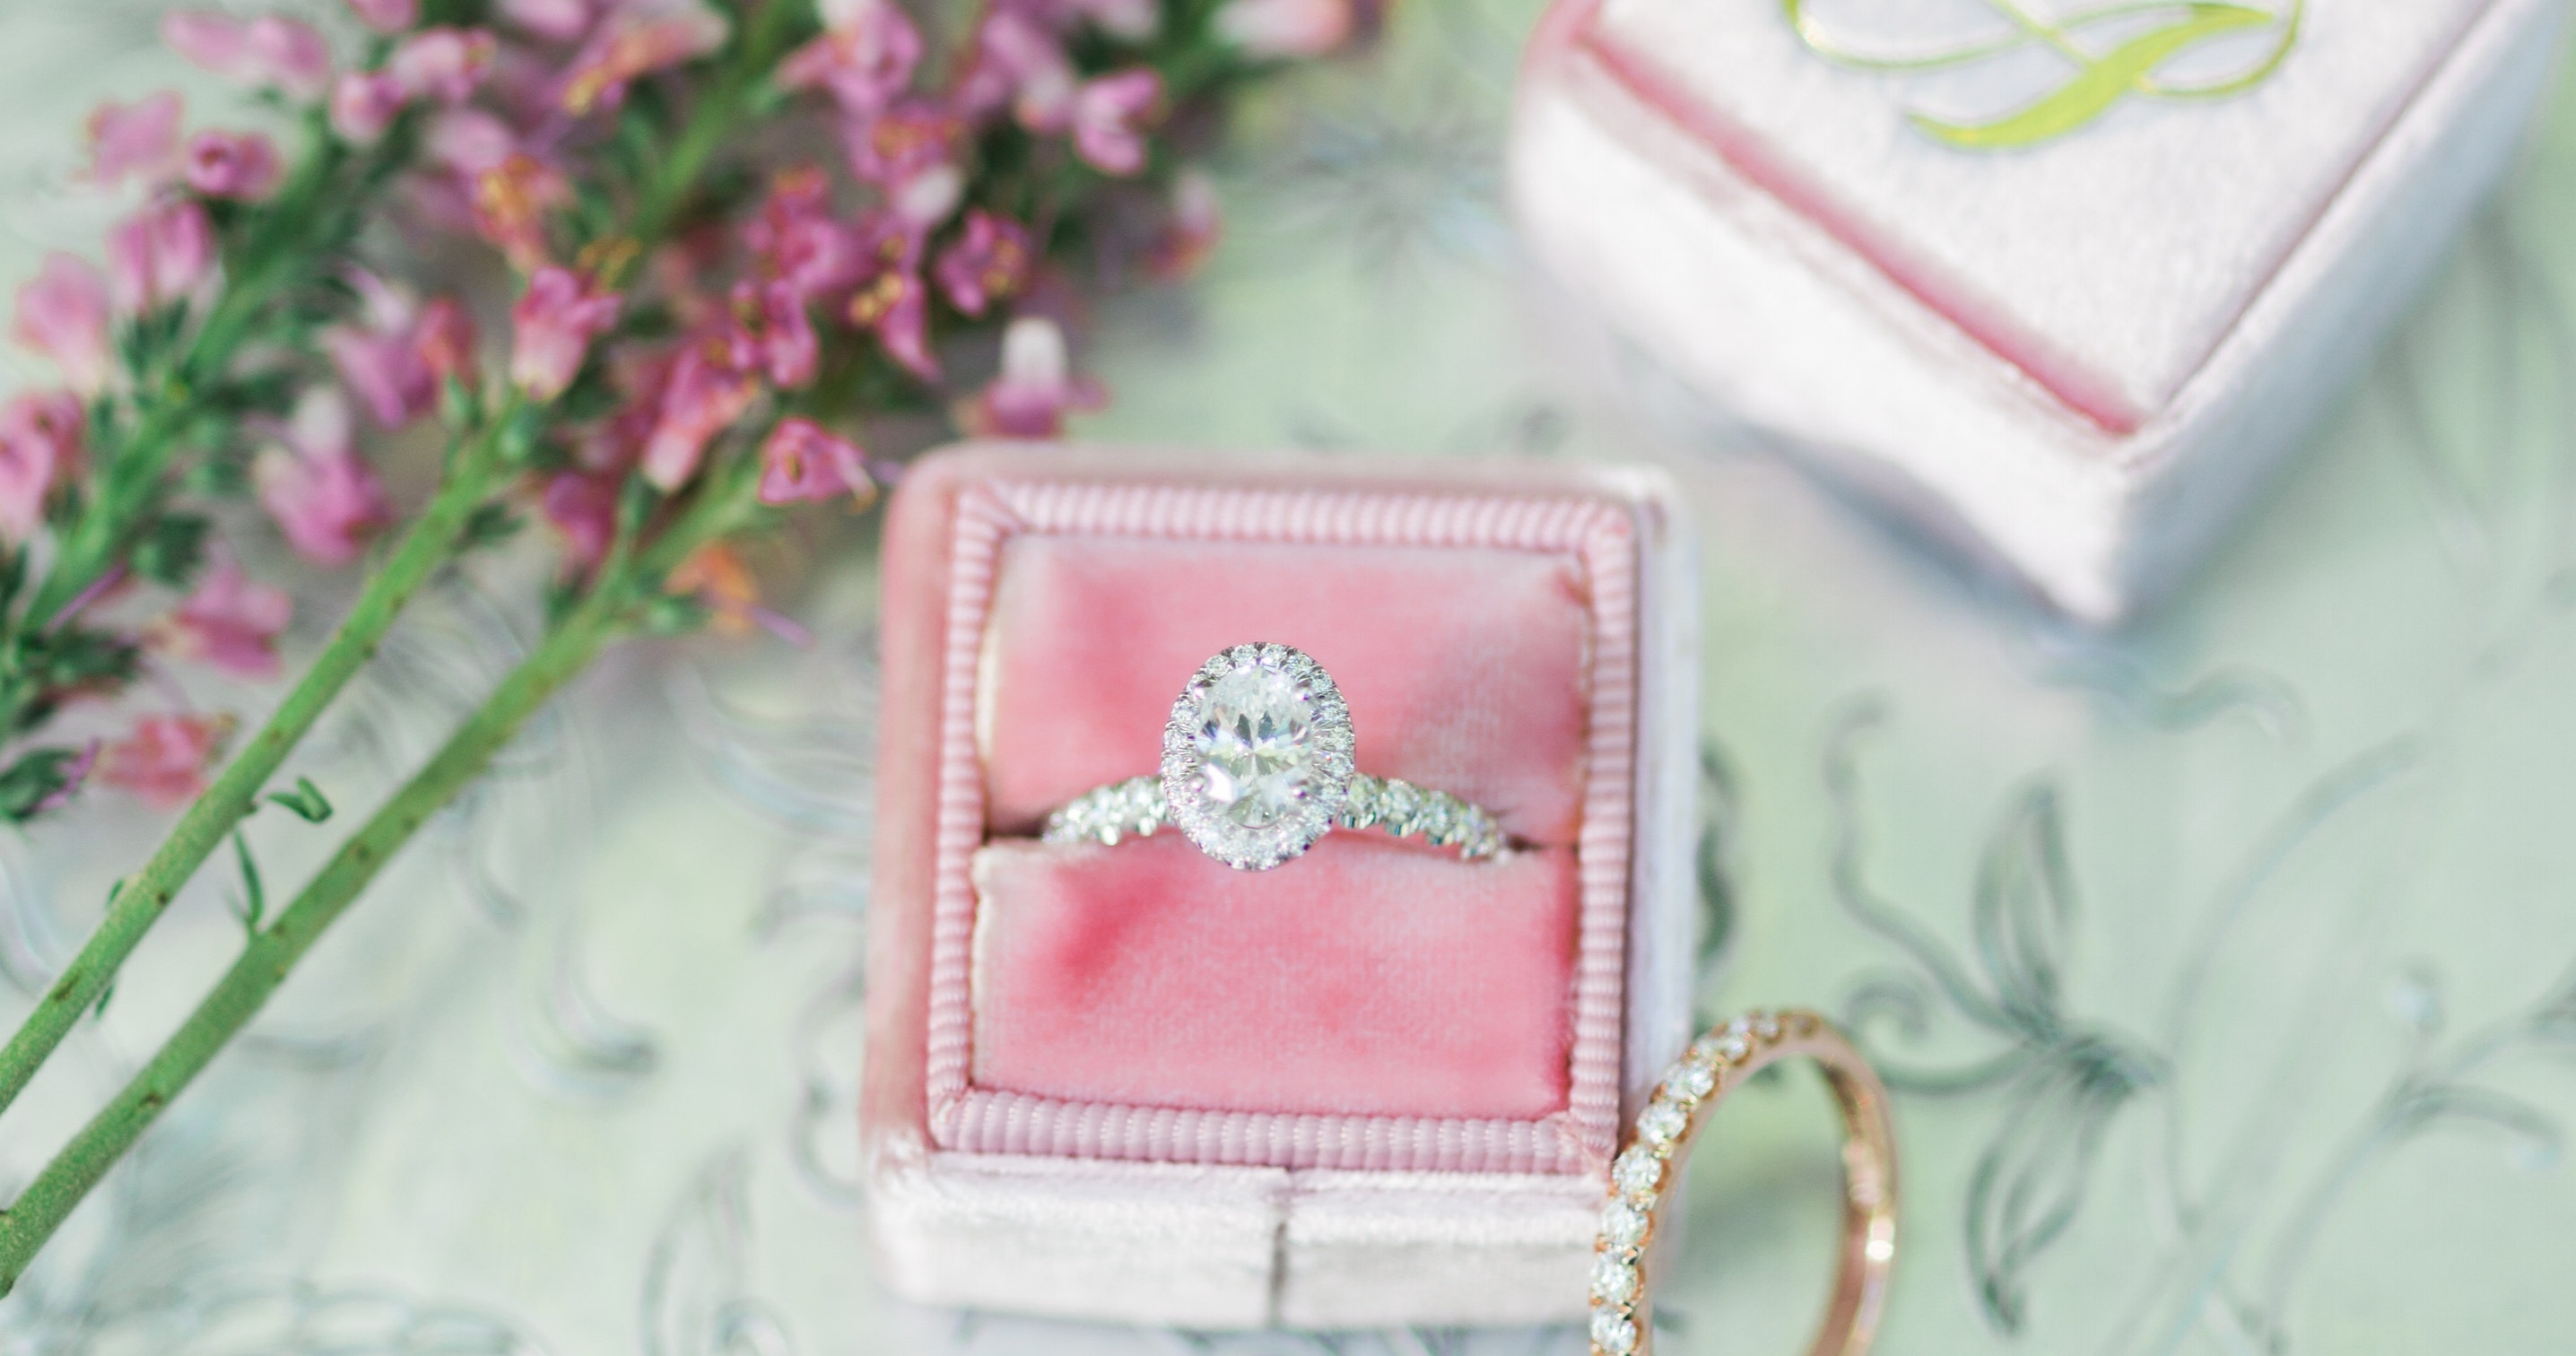 Oval Engagement Rings We're Loving Right Now